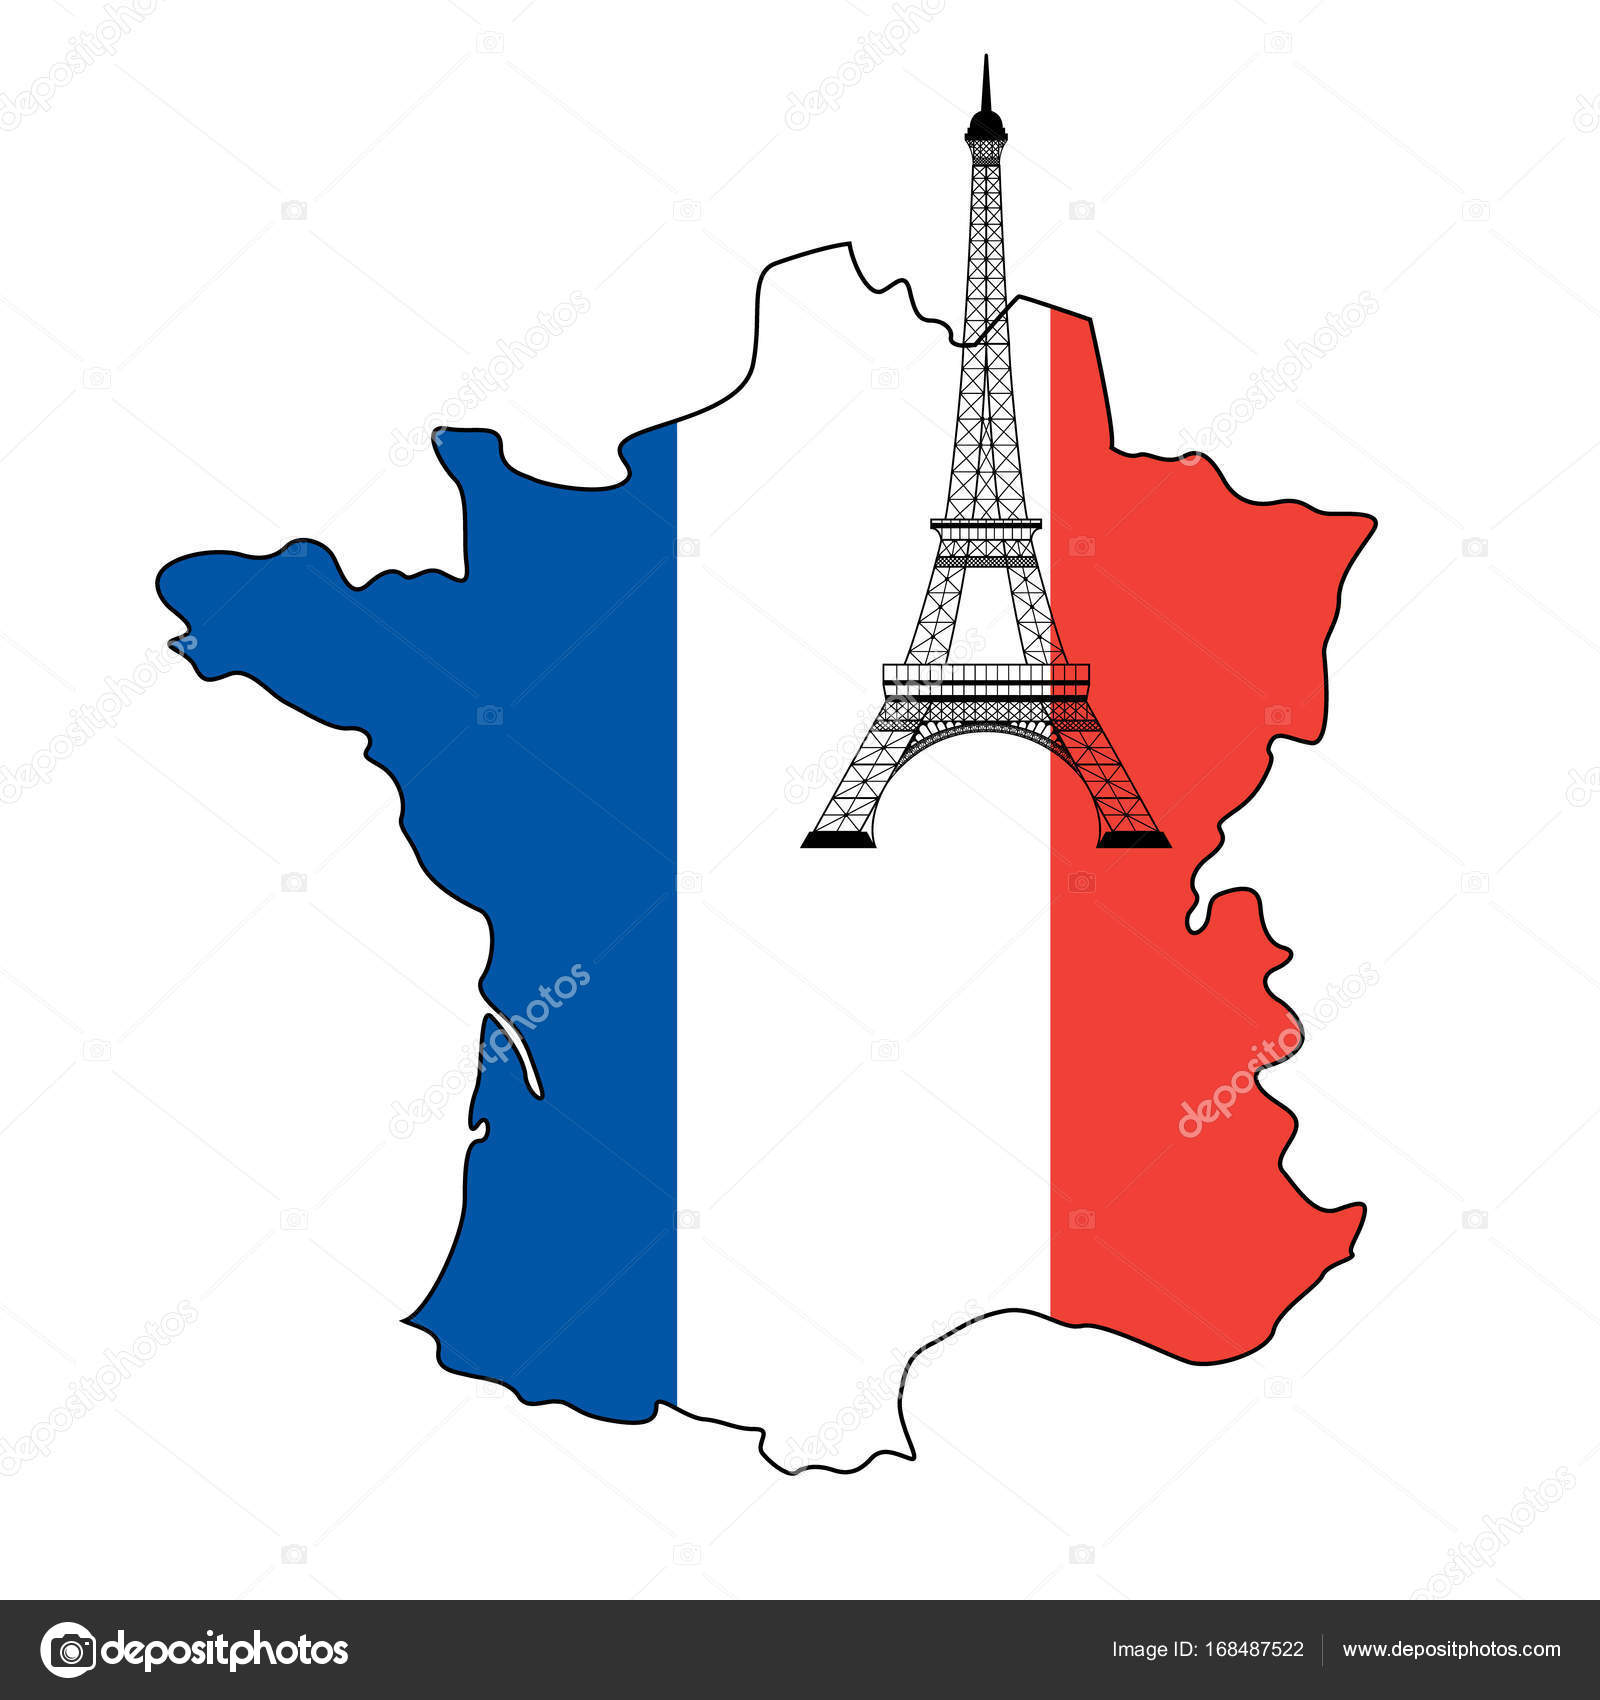 Map Of France Eiffel Tower.Eiffel Tower And Flag Of France Stock Vector C Nataly Nete 168487522